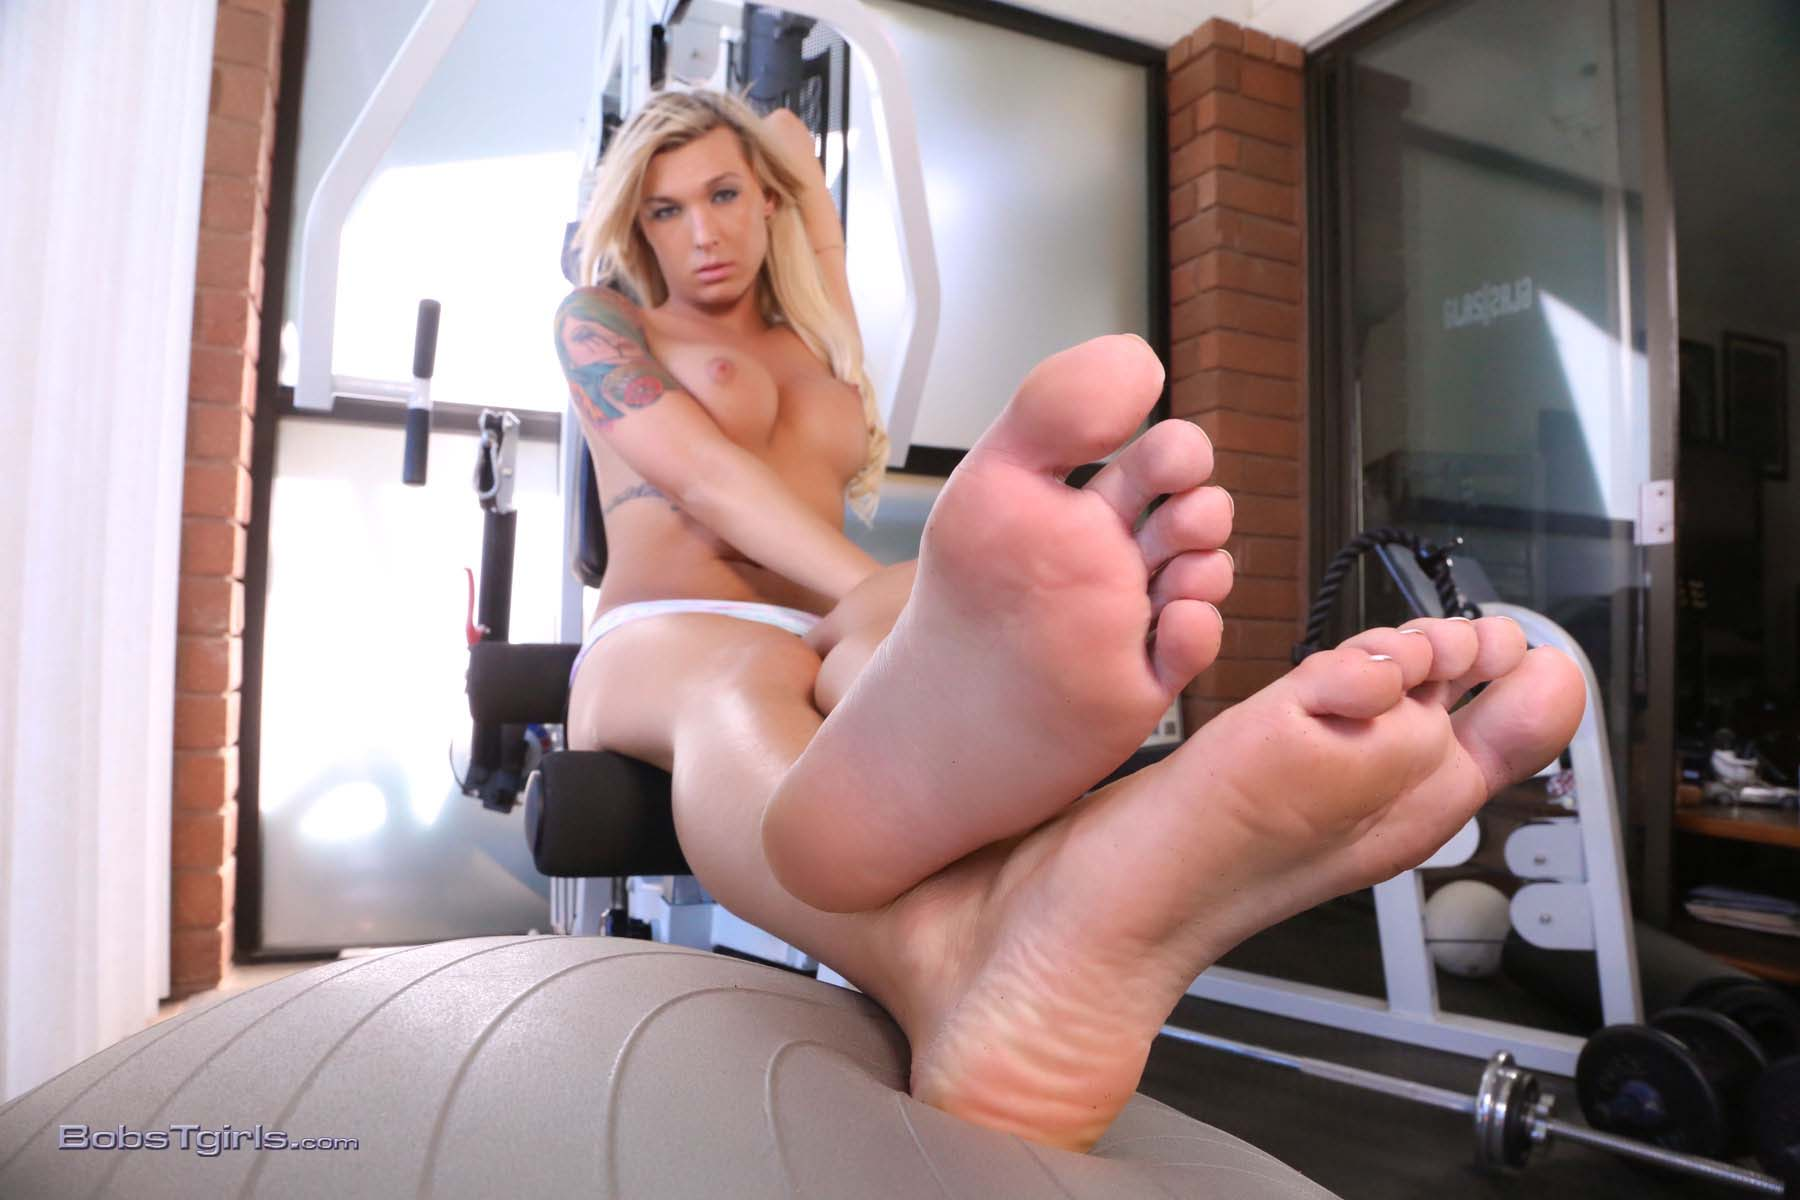 girls showing feet girls showing feet porn girls showing feet girls showing feet girls